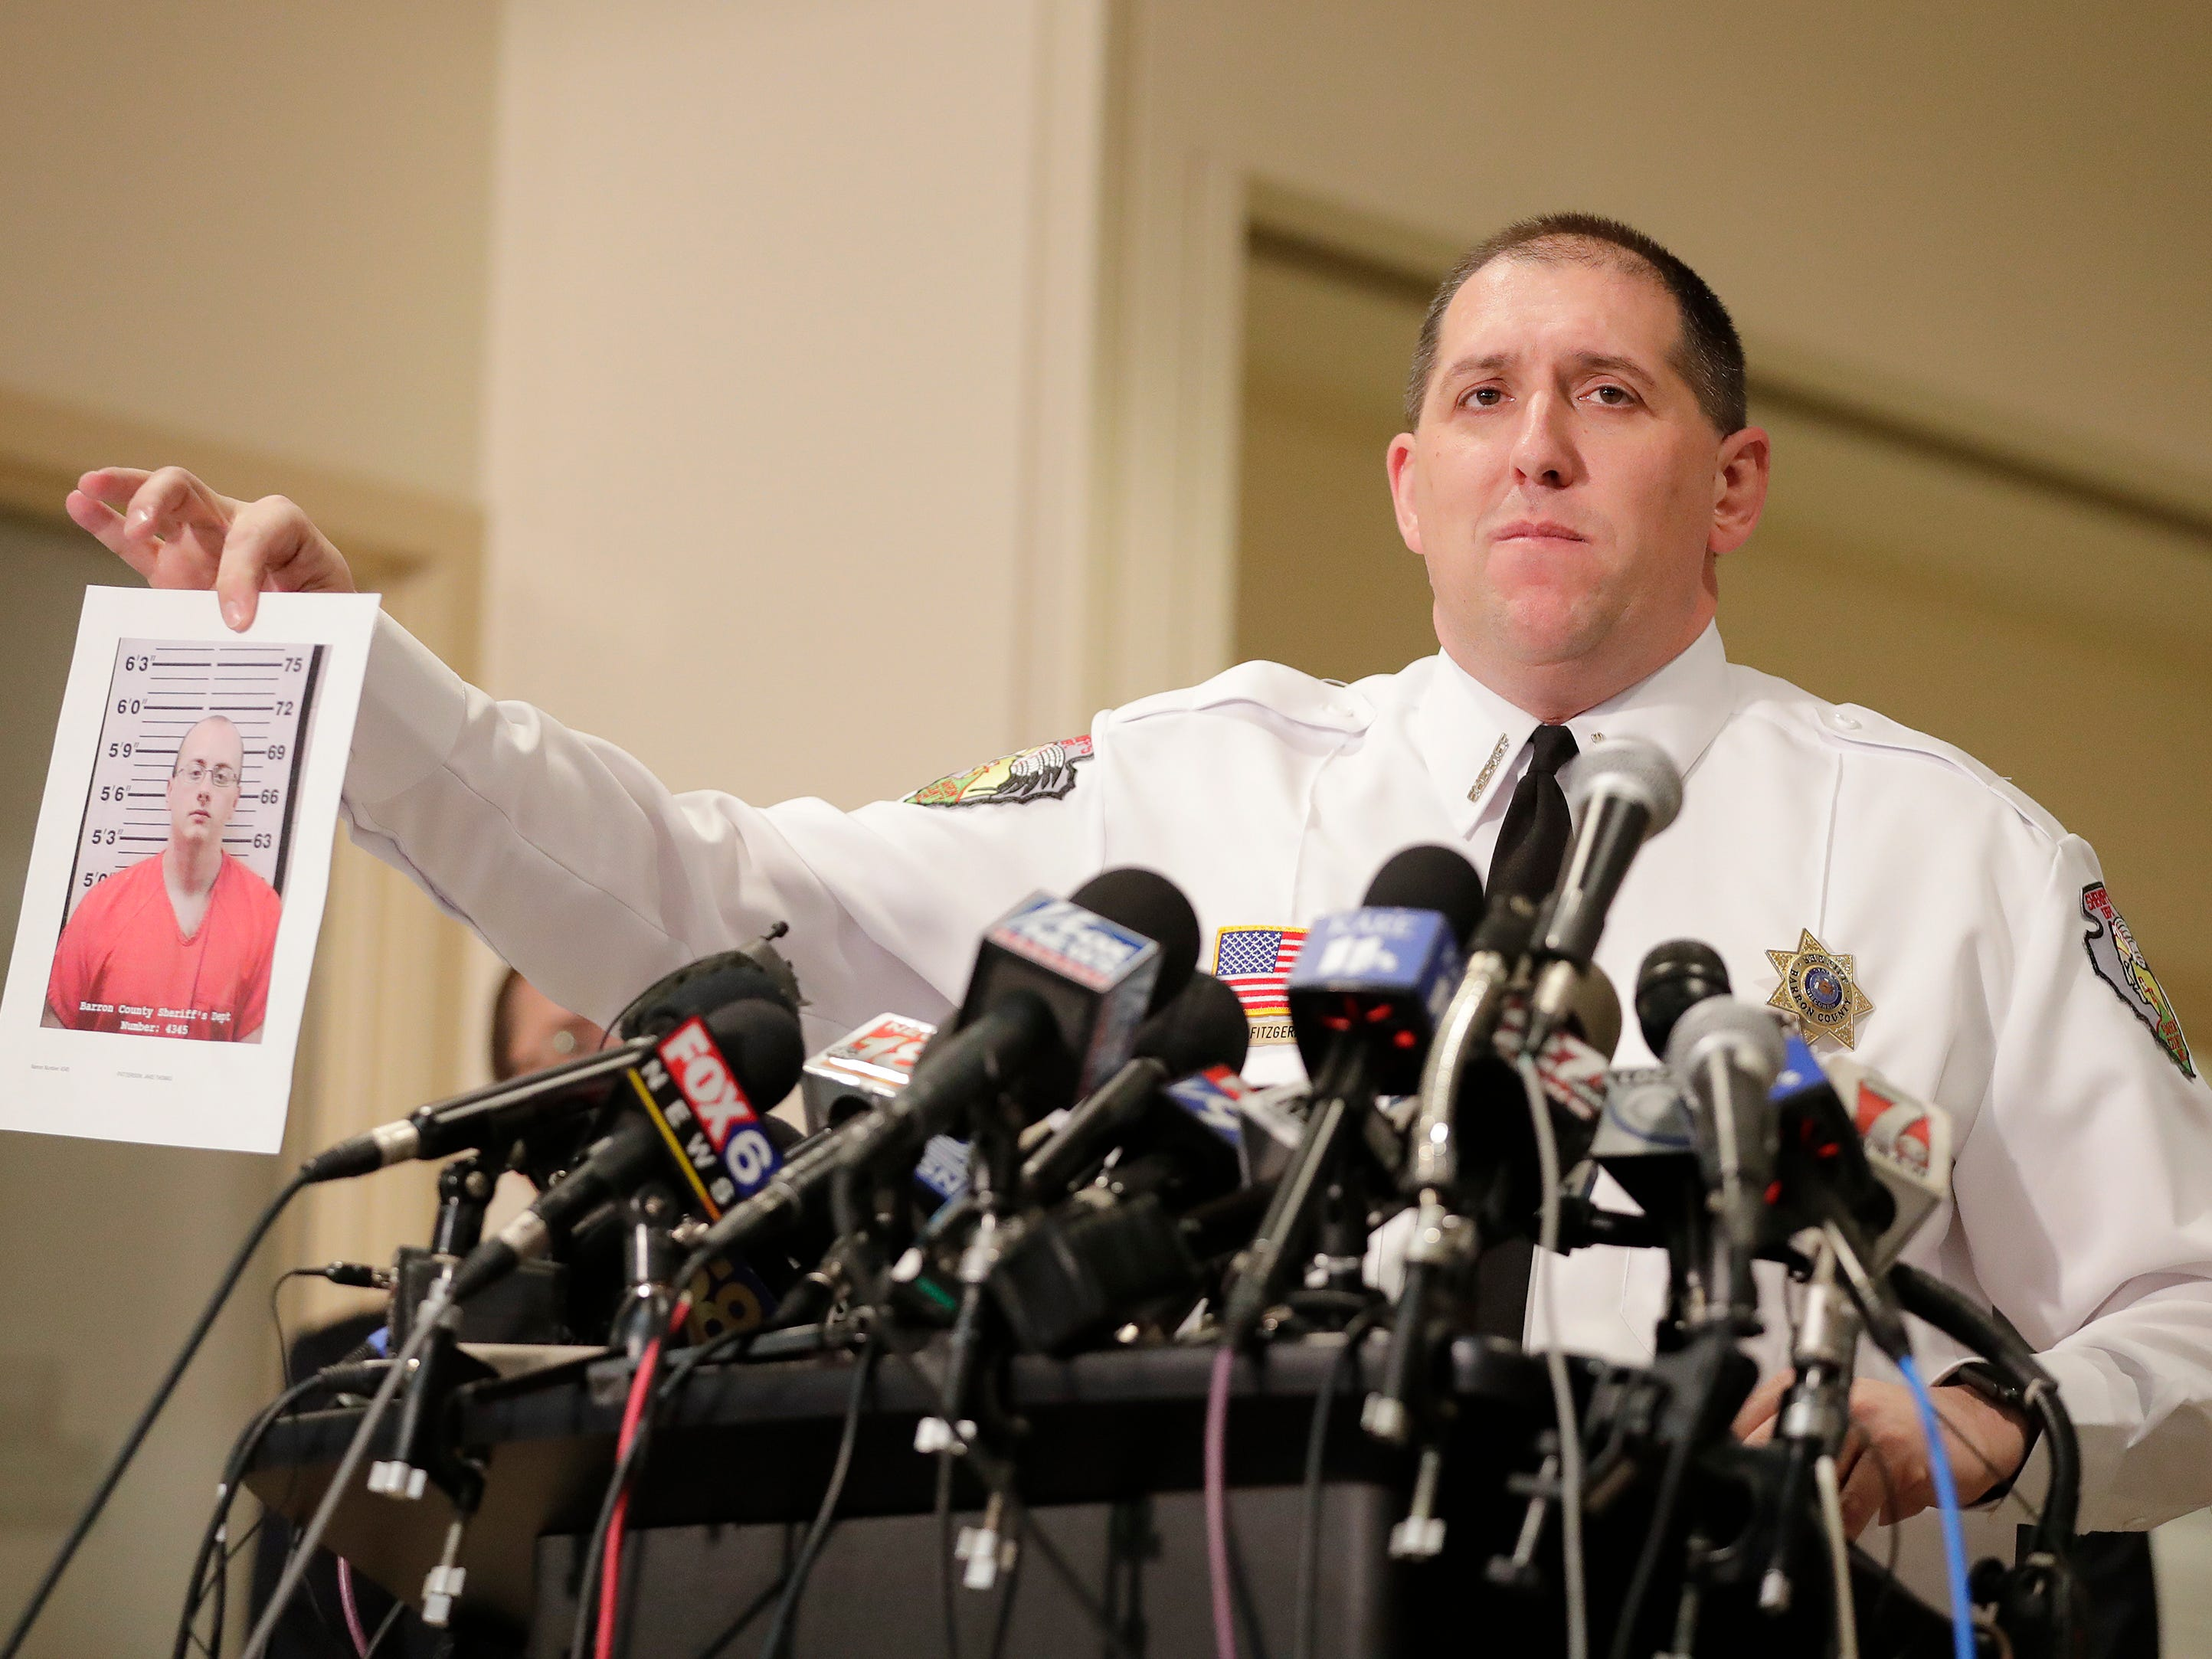 Barron County Sheriff Chris Fitzgerald holds up a photo of the suspect in custody for allegedly kidnapping Jayme Closs during a press conference at the Barron County Sheriff's Department on Friday, January 11, 2019 in Barron, Wis. Douglas County officials found 13-year-old Jayme Closs on Thursday near the northern Wisconsin town of Gordon. Jayme had been missing since Oct. 15, the same day her parents, James, 56, and Denise, 46, were found shot to death in their home outside Barron.